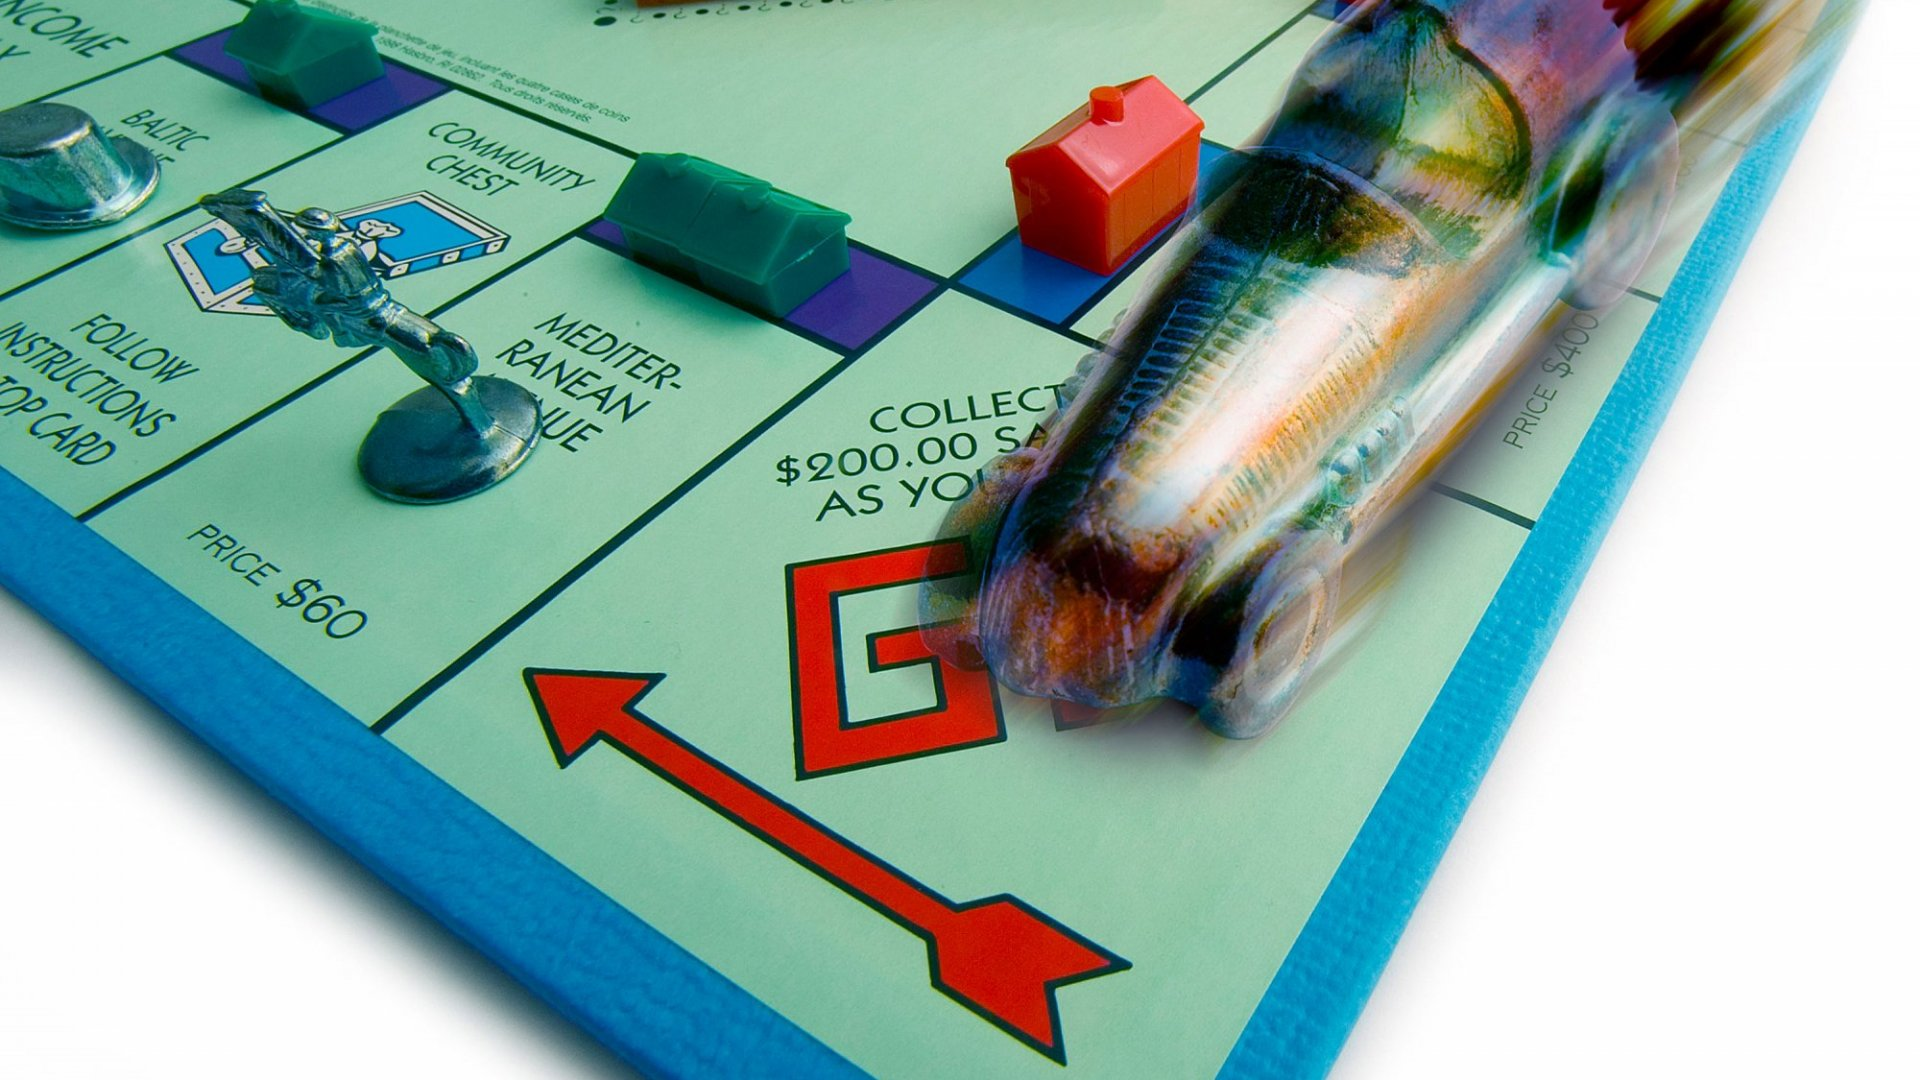 Hasbro Turns Monopoly Into a Lesson on Gender Bias, But It Probably Could Be More Woke